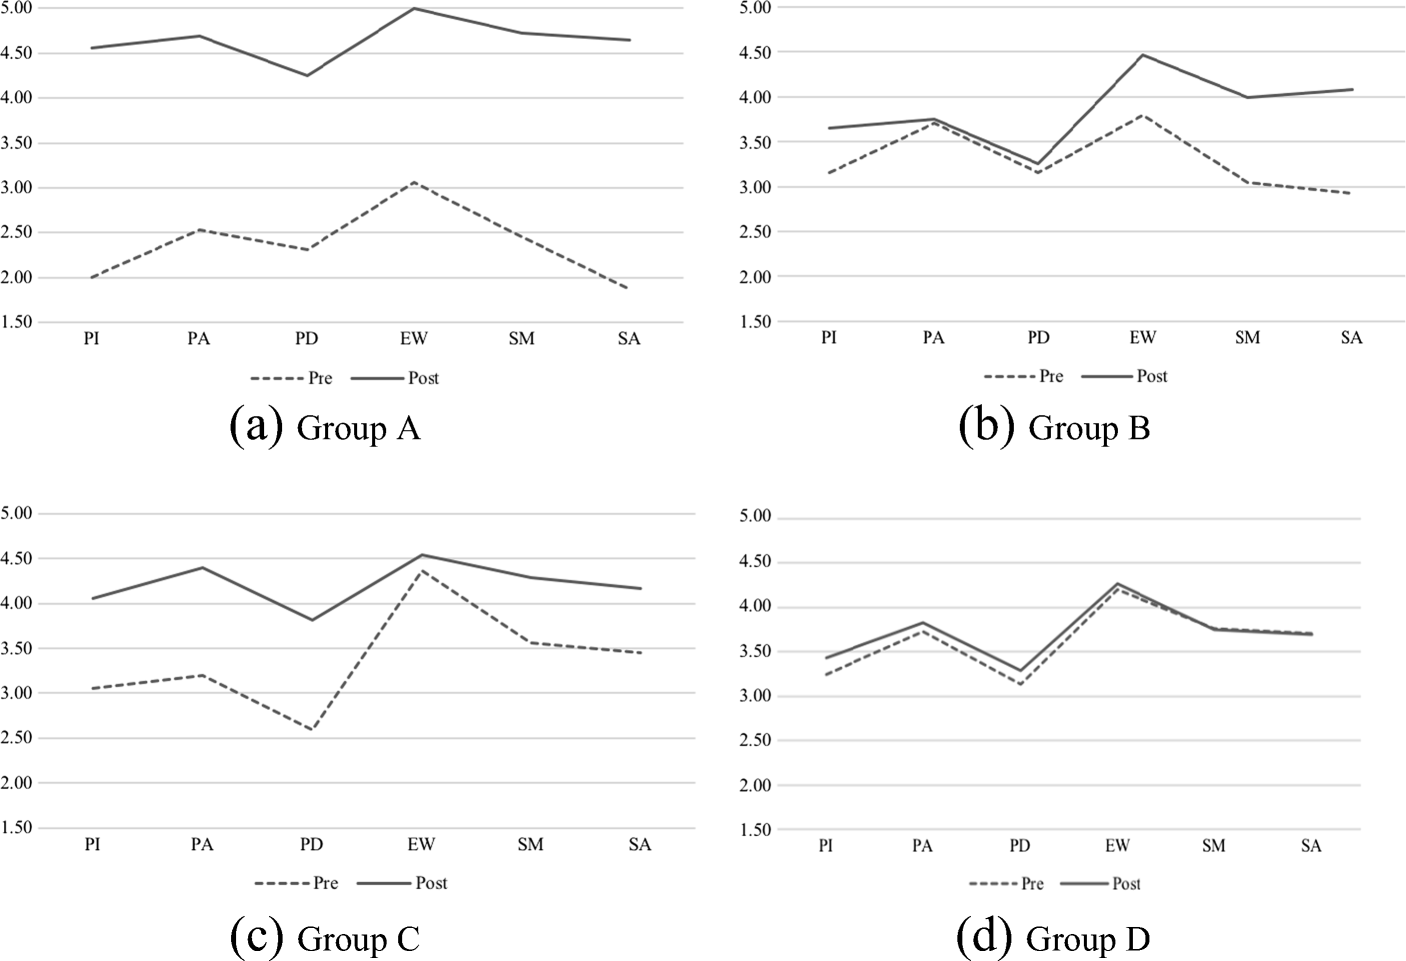 The Effects of Community-Based Socioscientific Issues